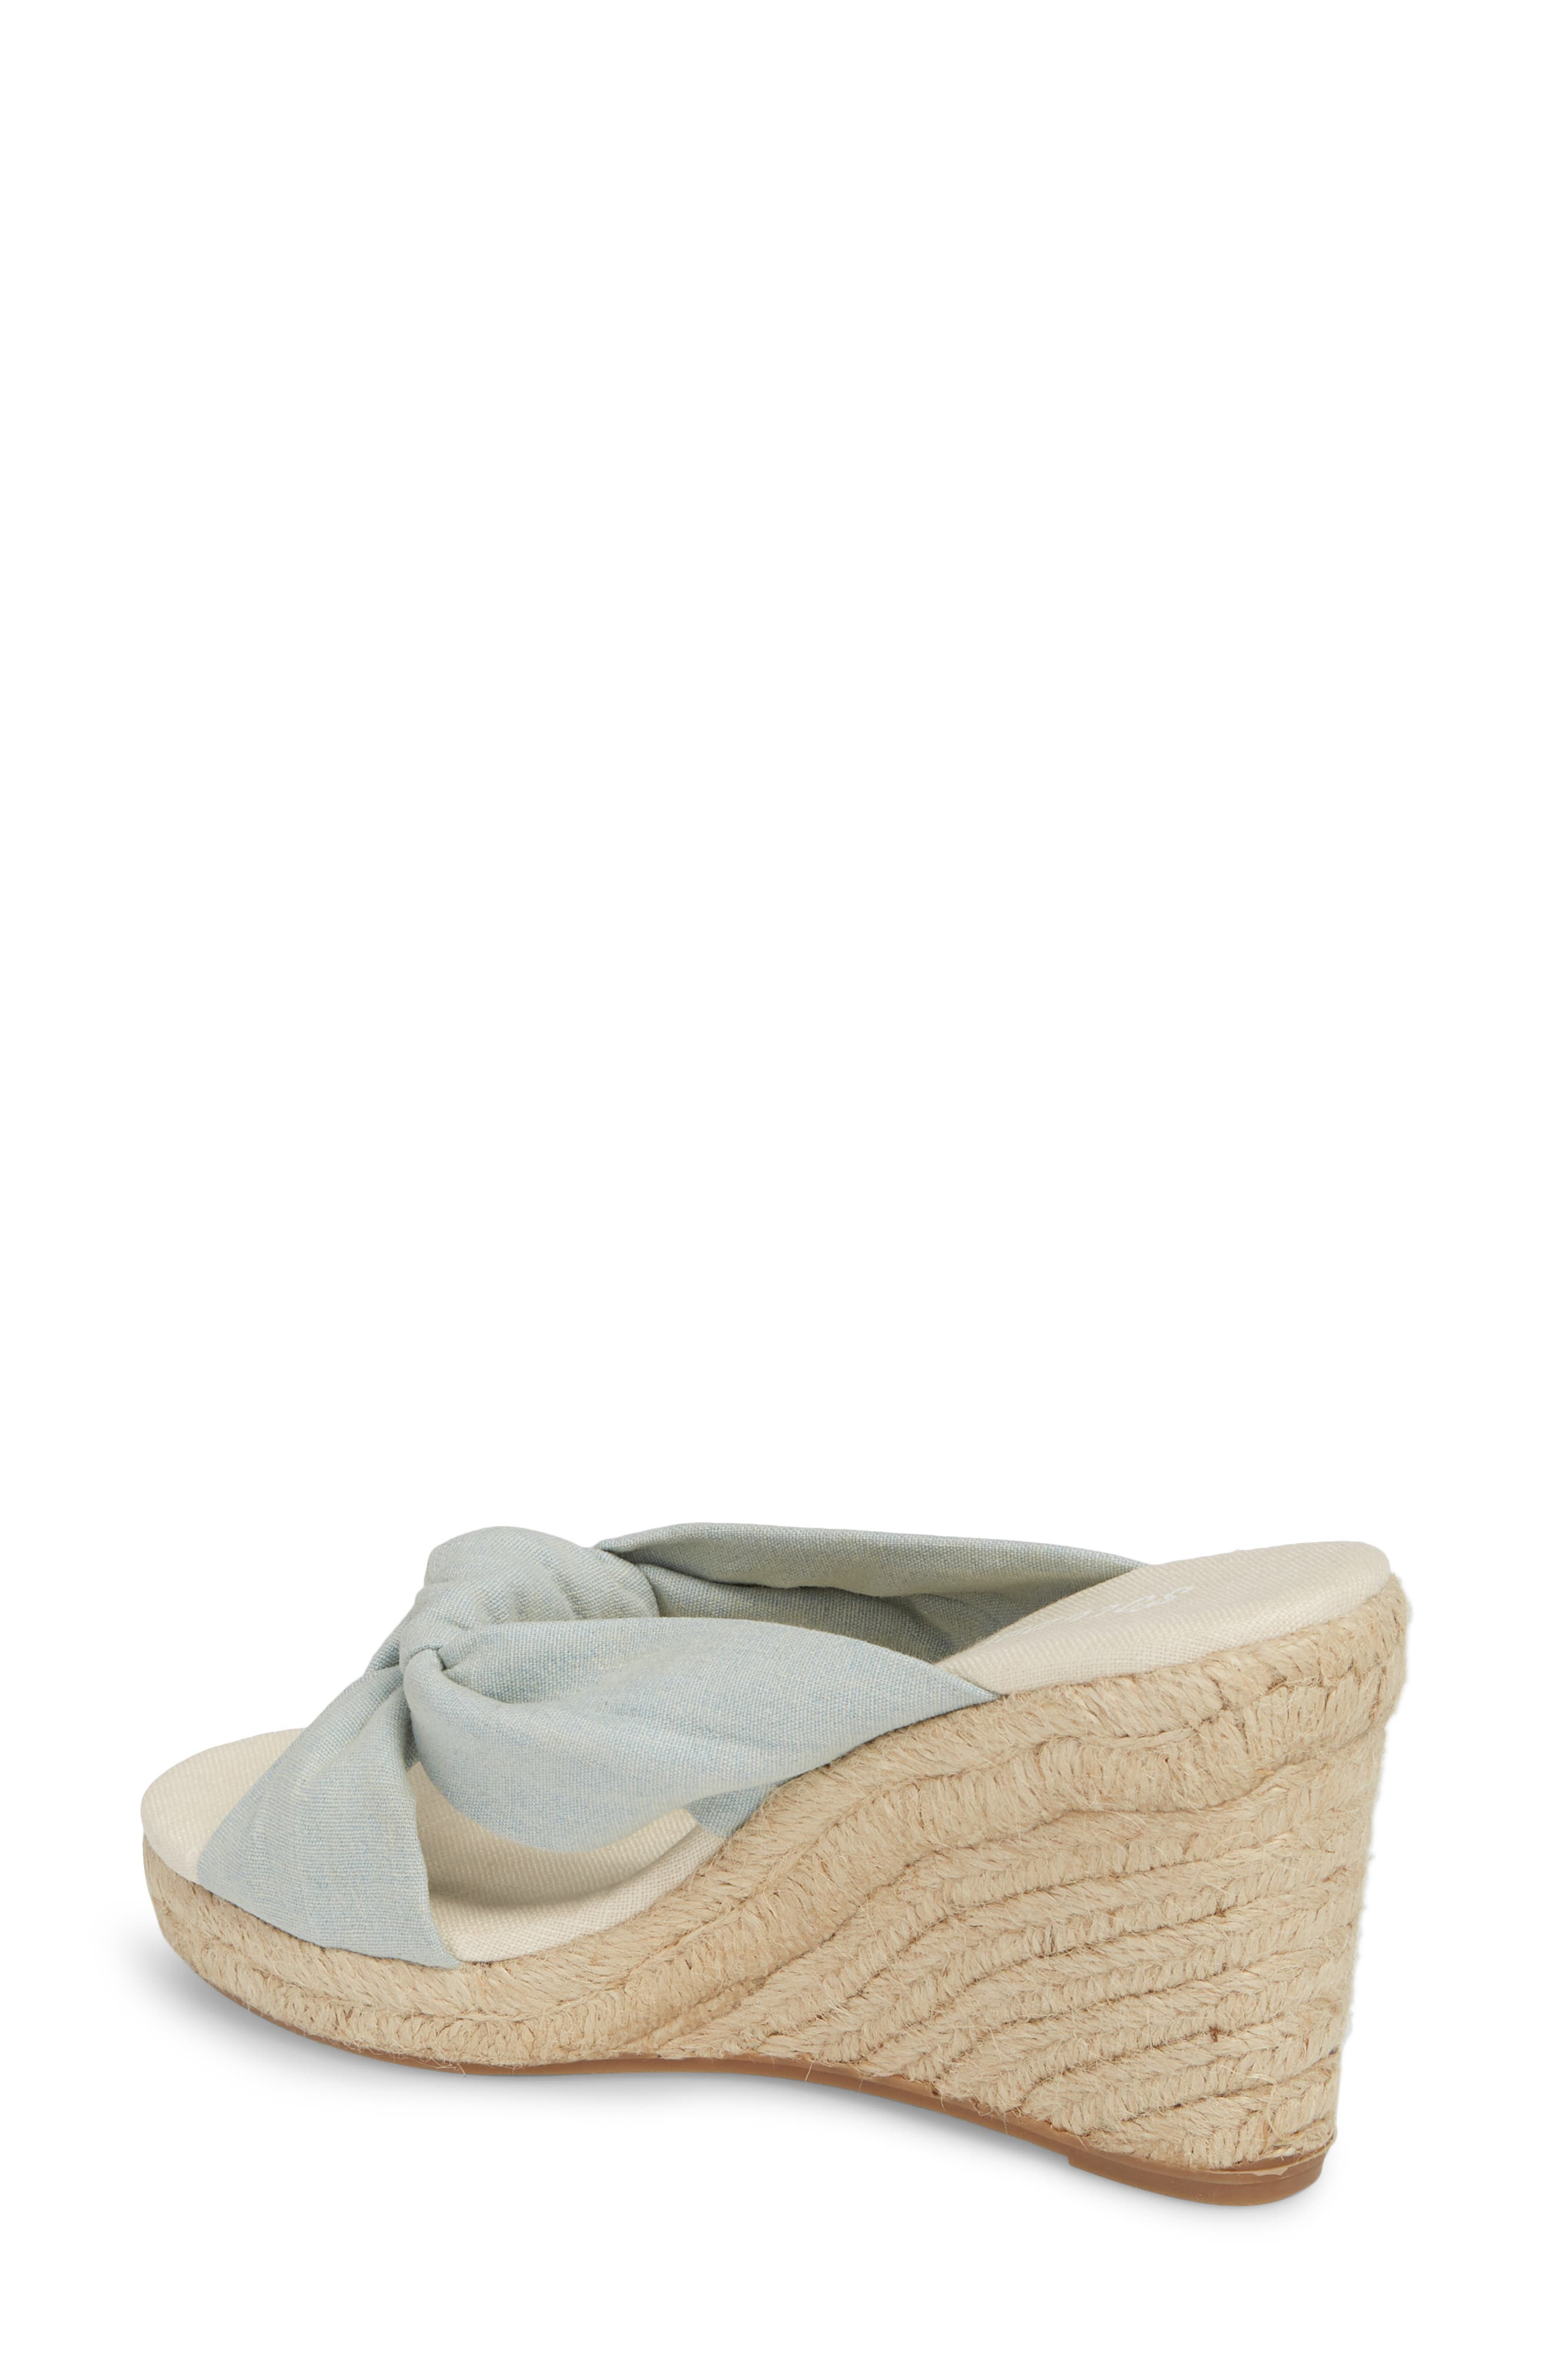 Knotted Espadrille Wedge Sandal,                             Alternate thumbnail 2, color,                             420